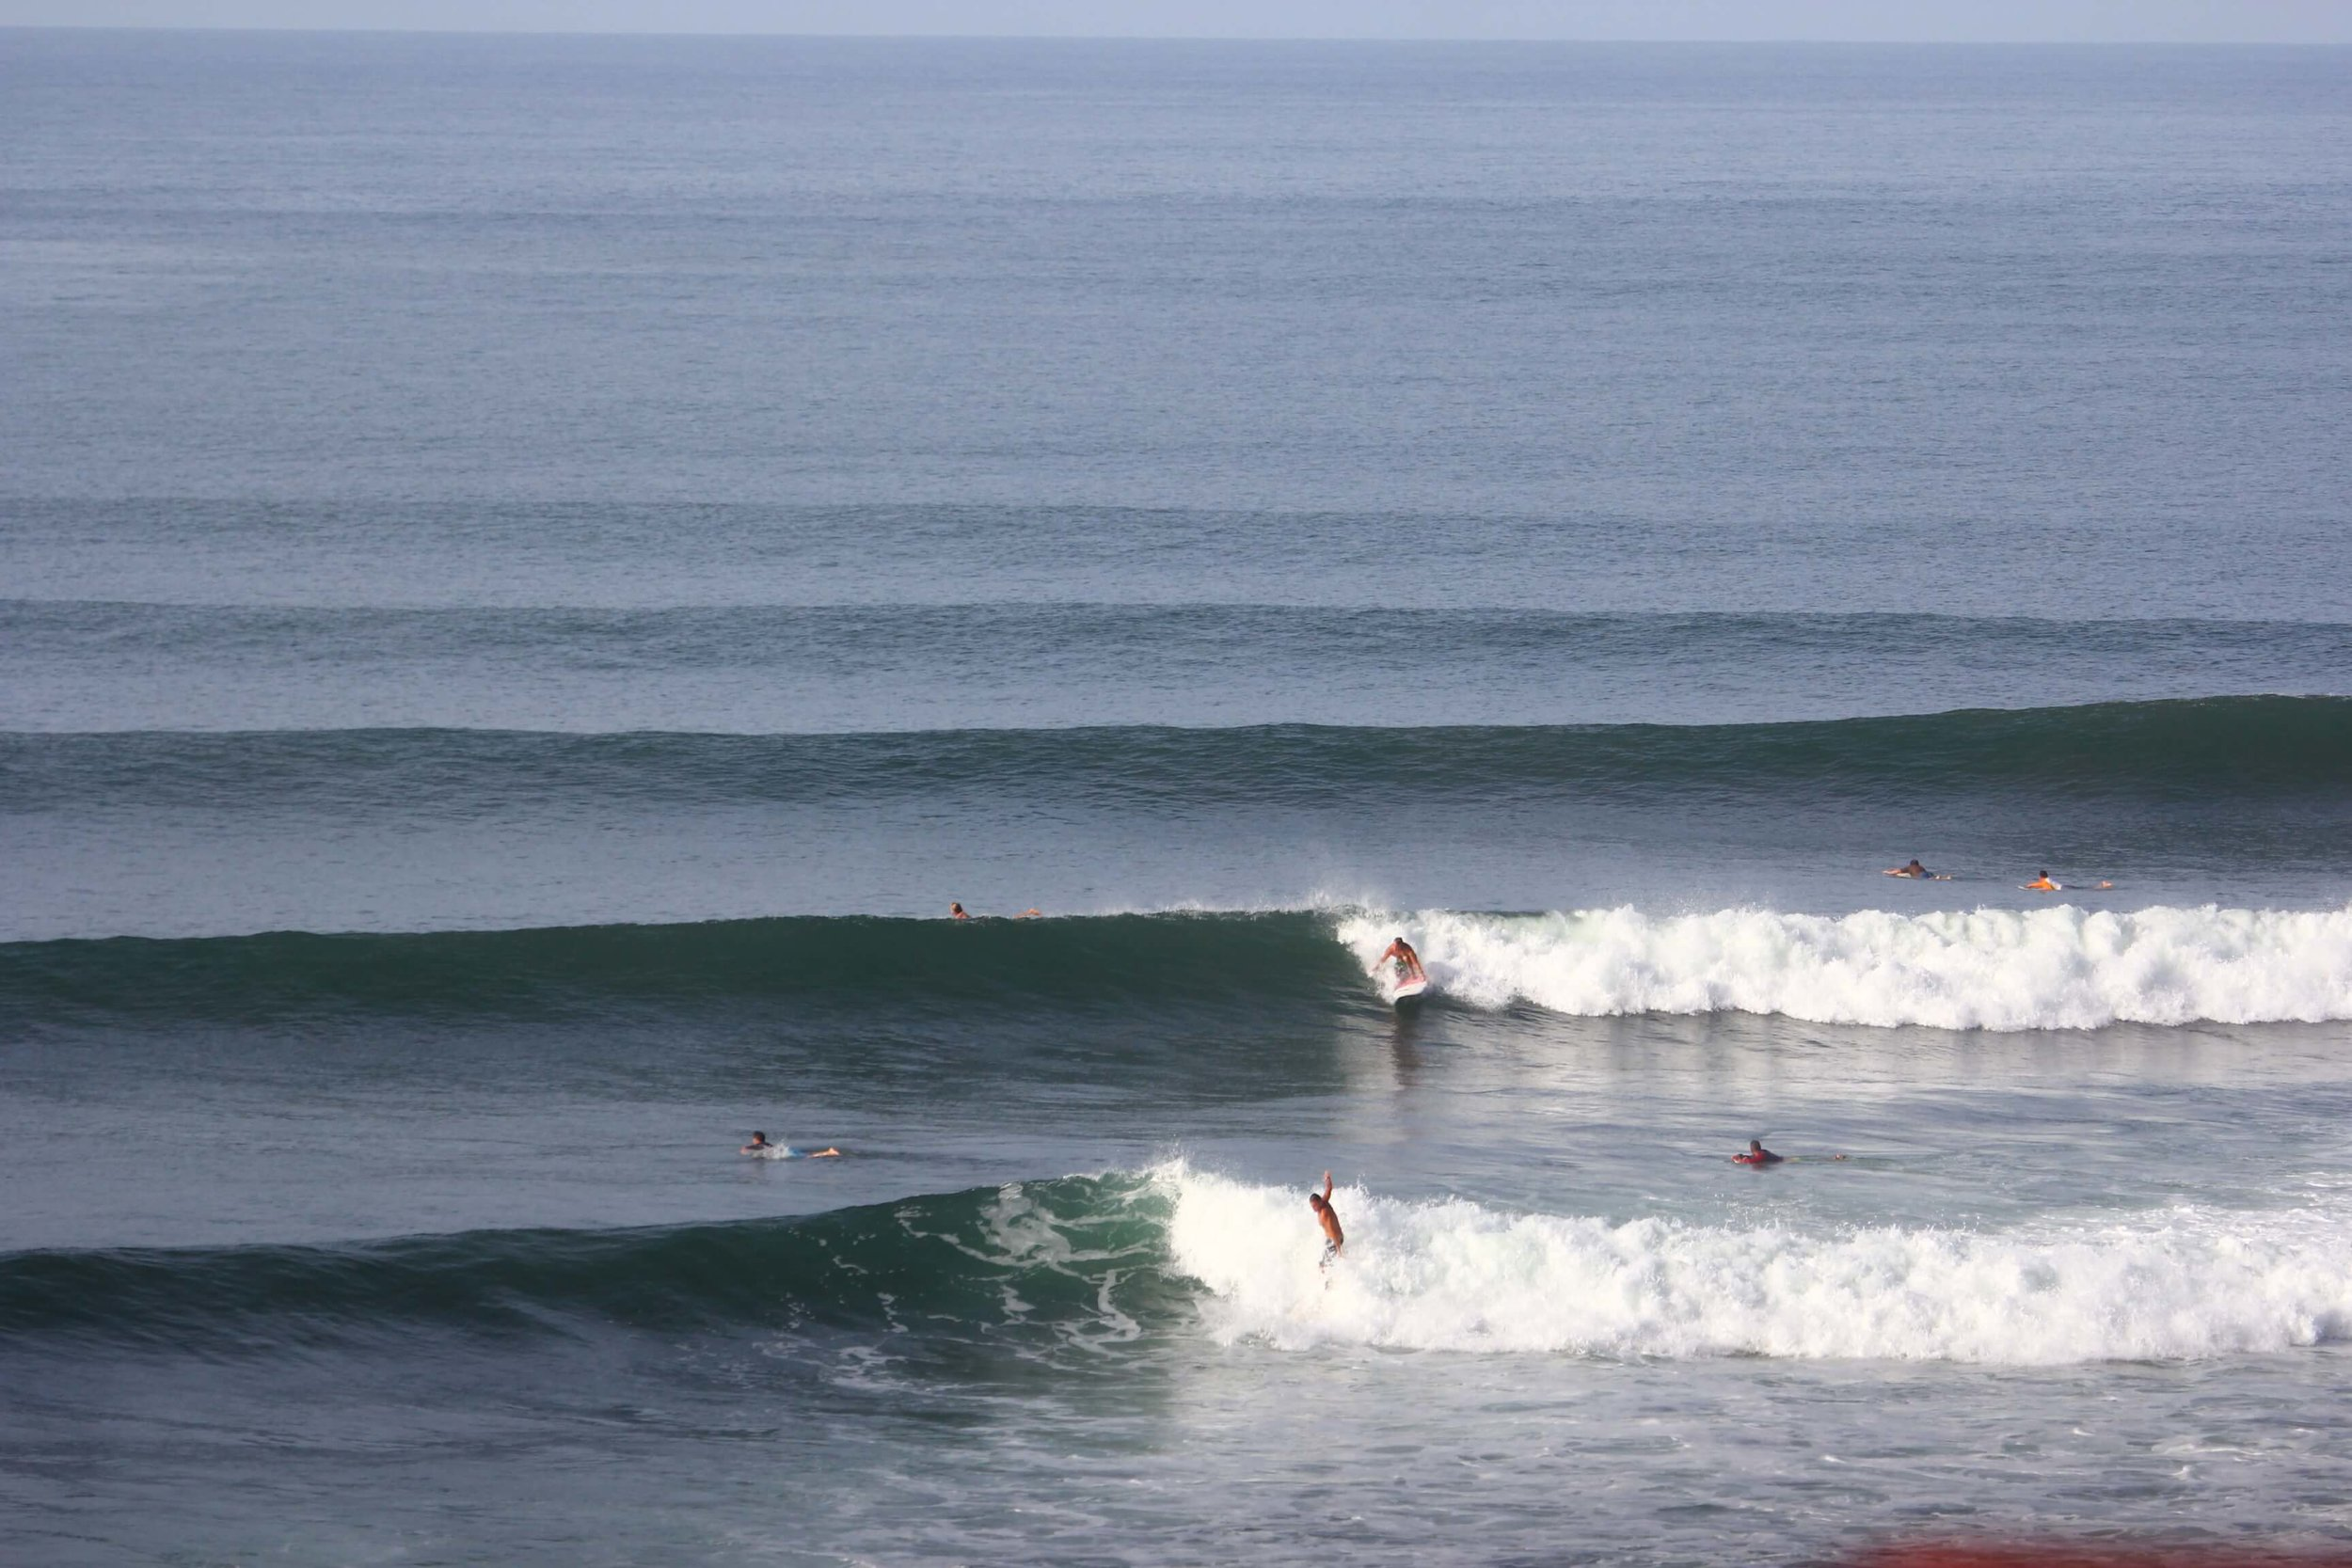 Our wave in front of Puro Surf.